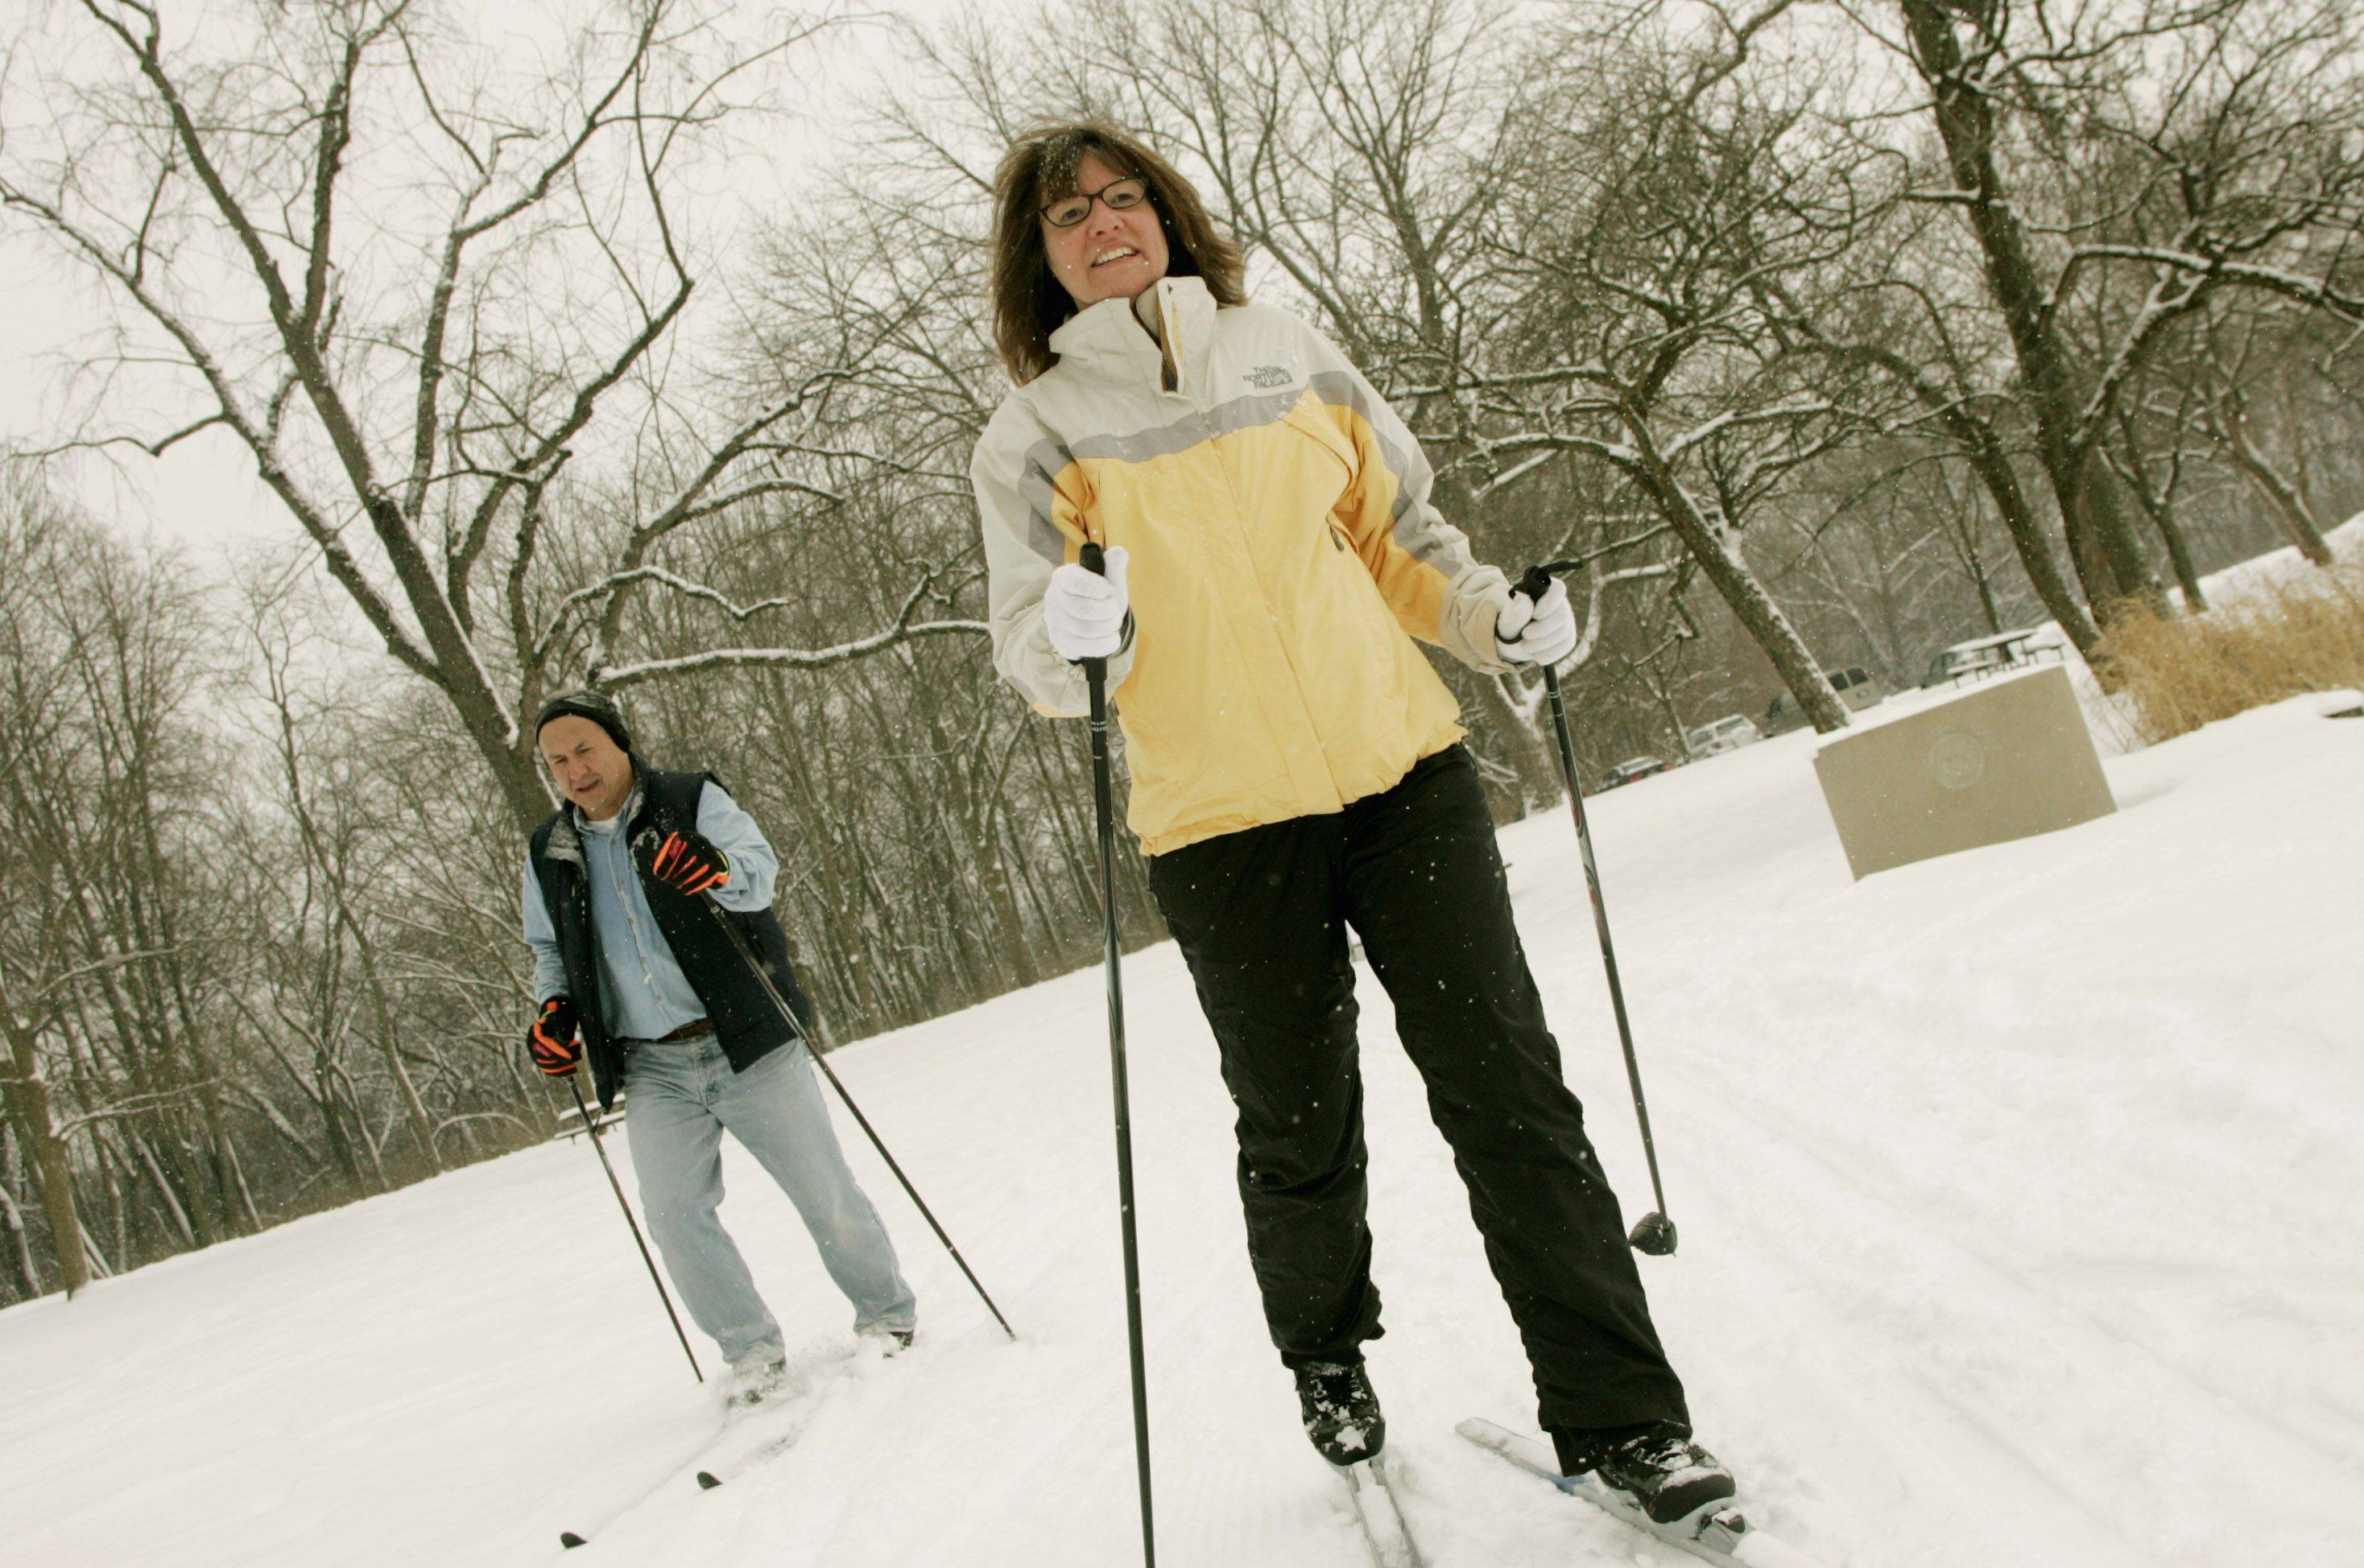 Those hoping to take a cross-country skiing class through the Wheaton Park District are hoping for a few inches of snow so they can hit the trails.